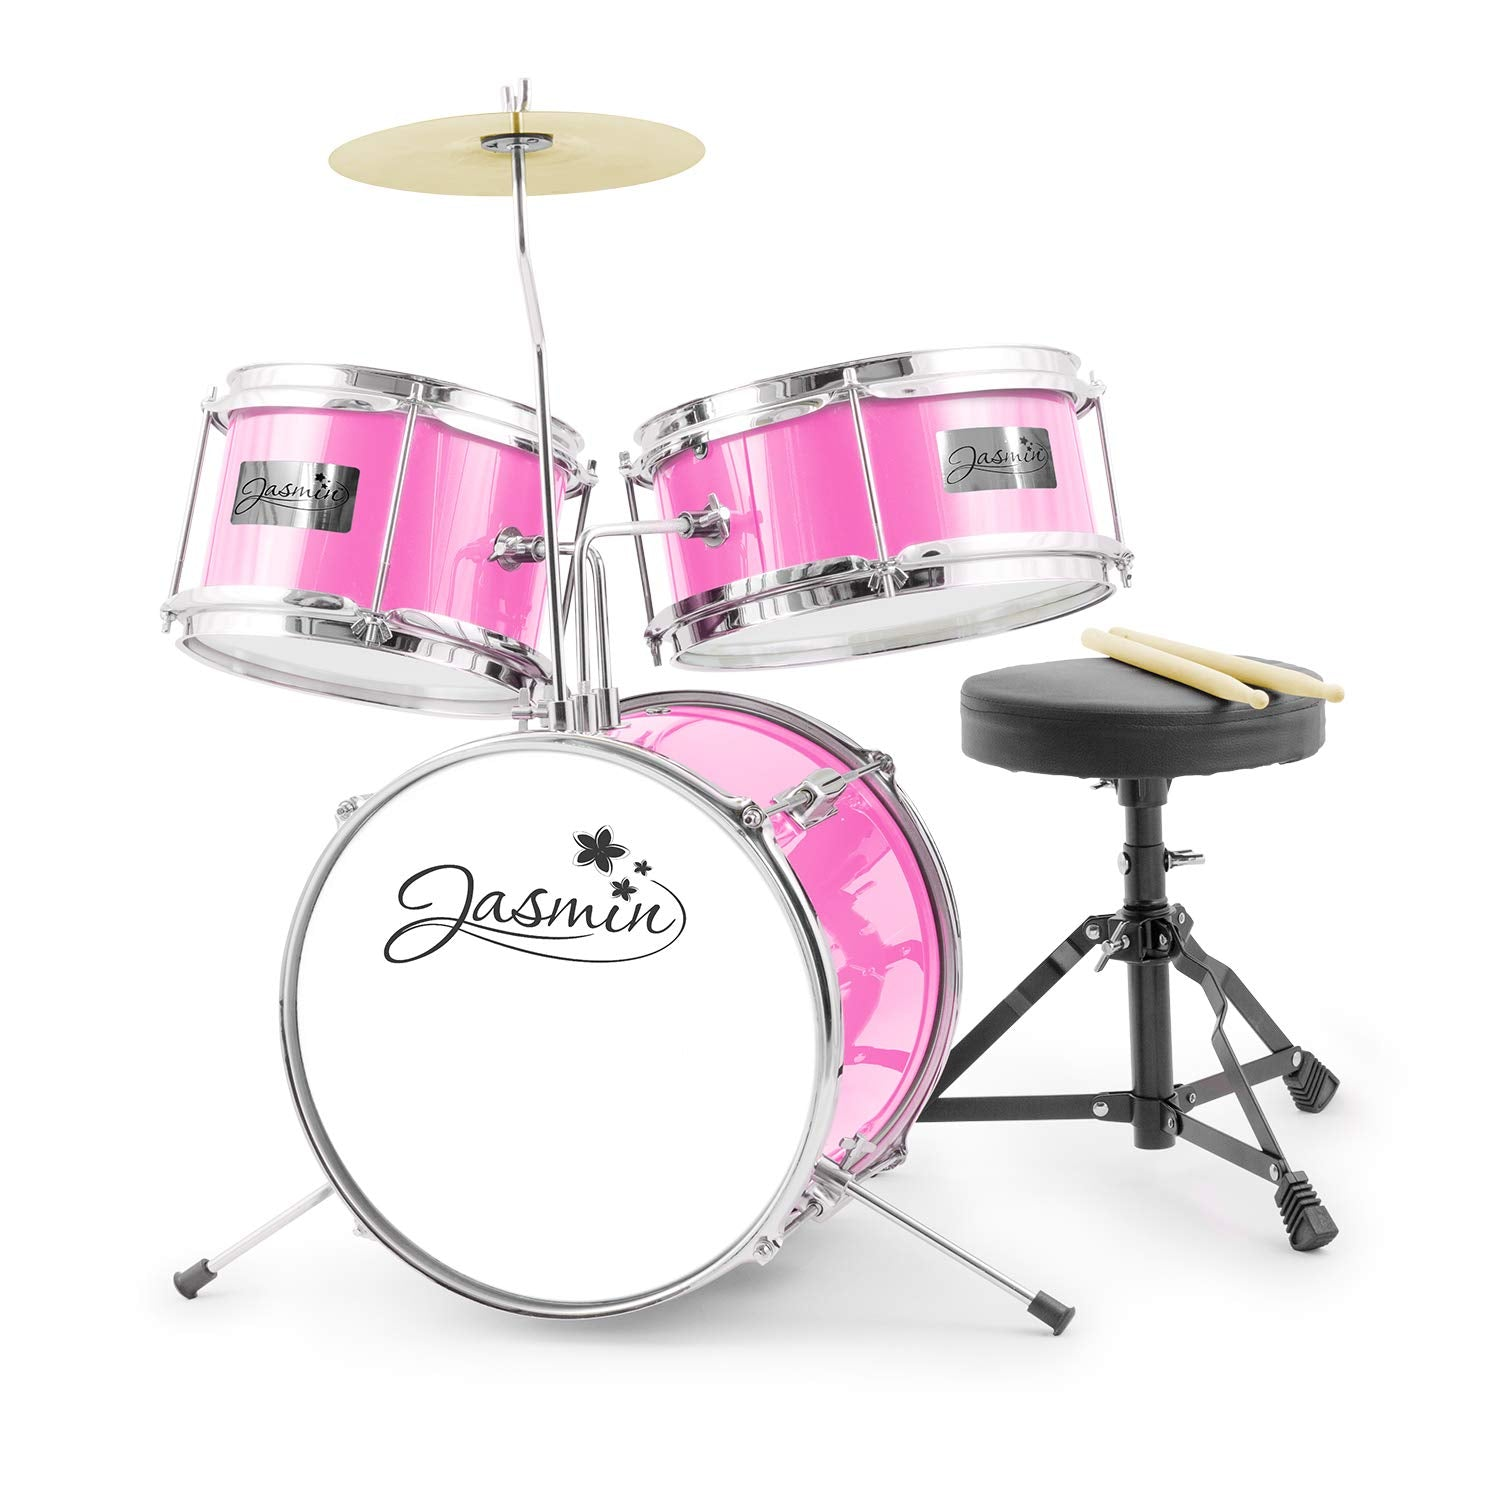 Tiger 3 Piece Junior Drum Kit - Jasmine Pink